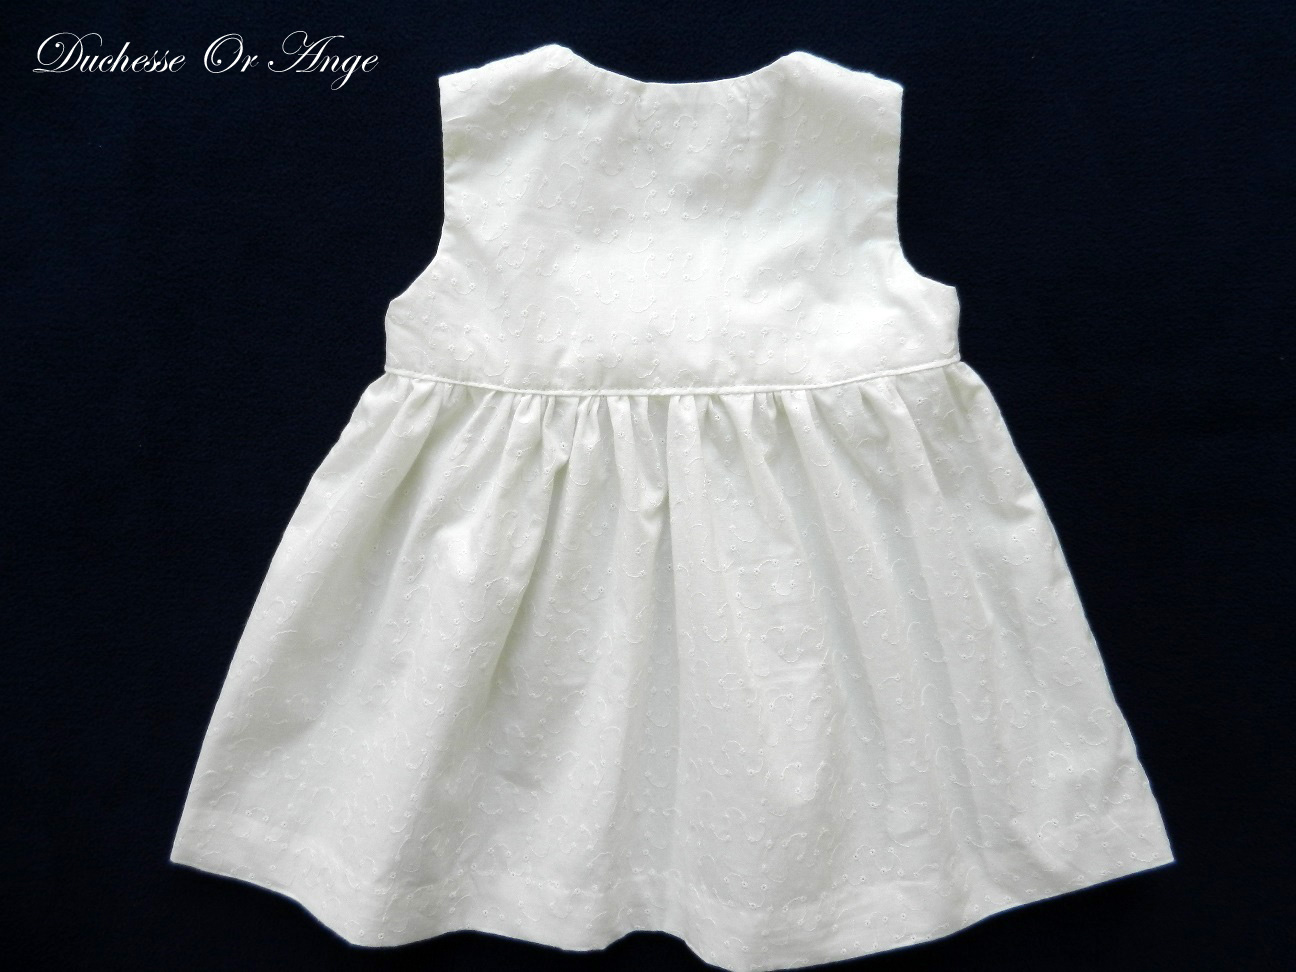 White eyelet wrapover baby dress with silver handmade